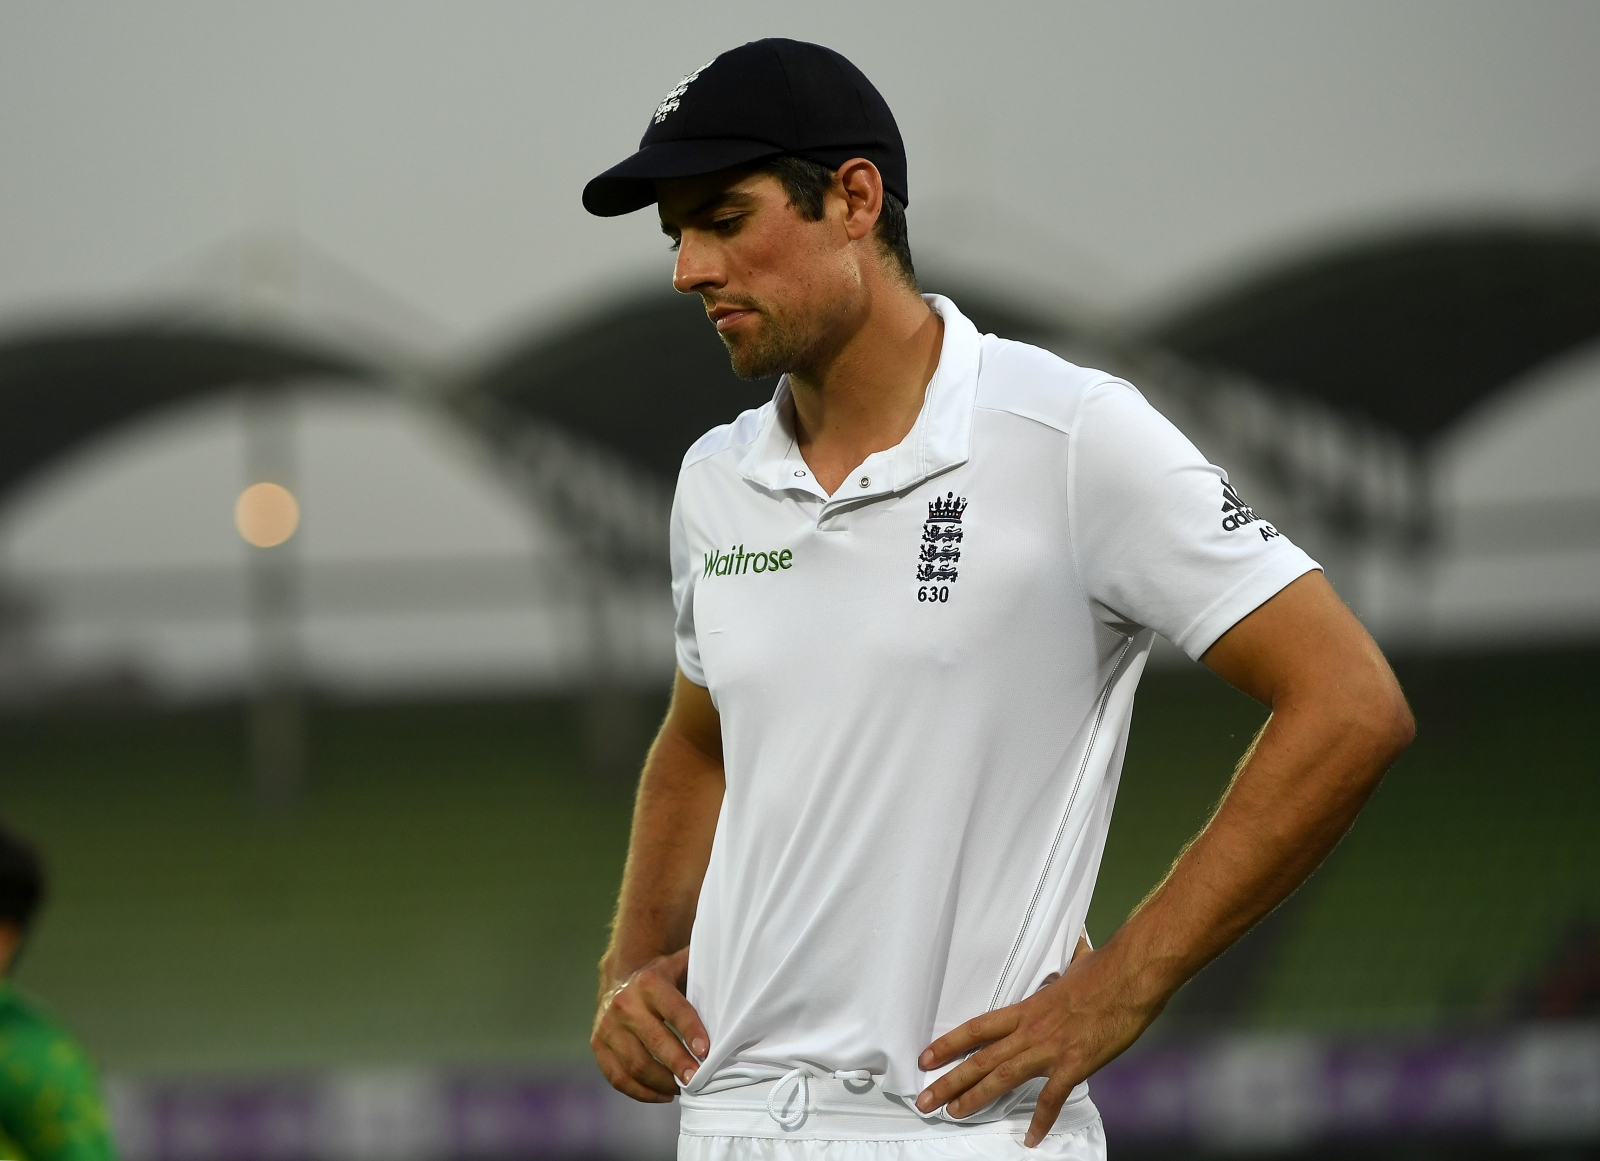 Andrew strauss says alastair cook retired as he knew how much is left